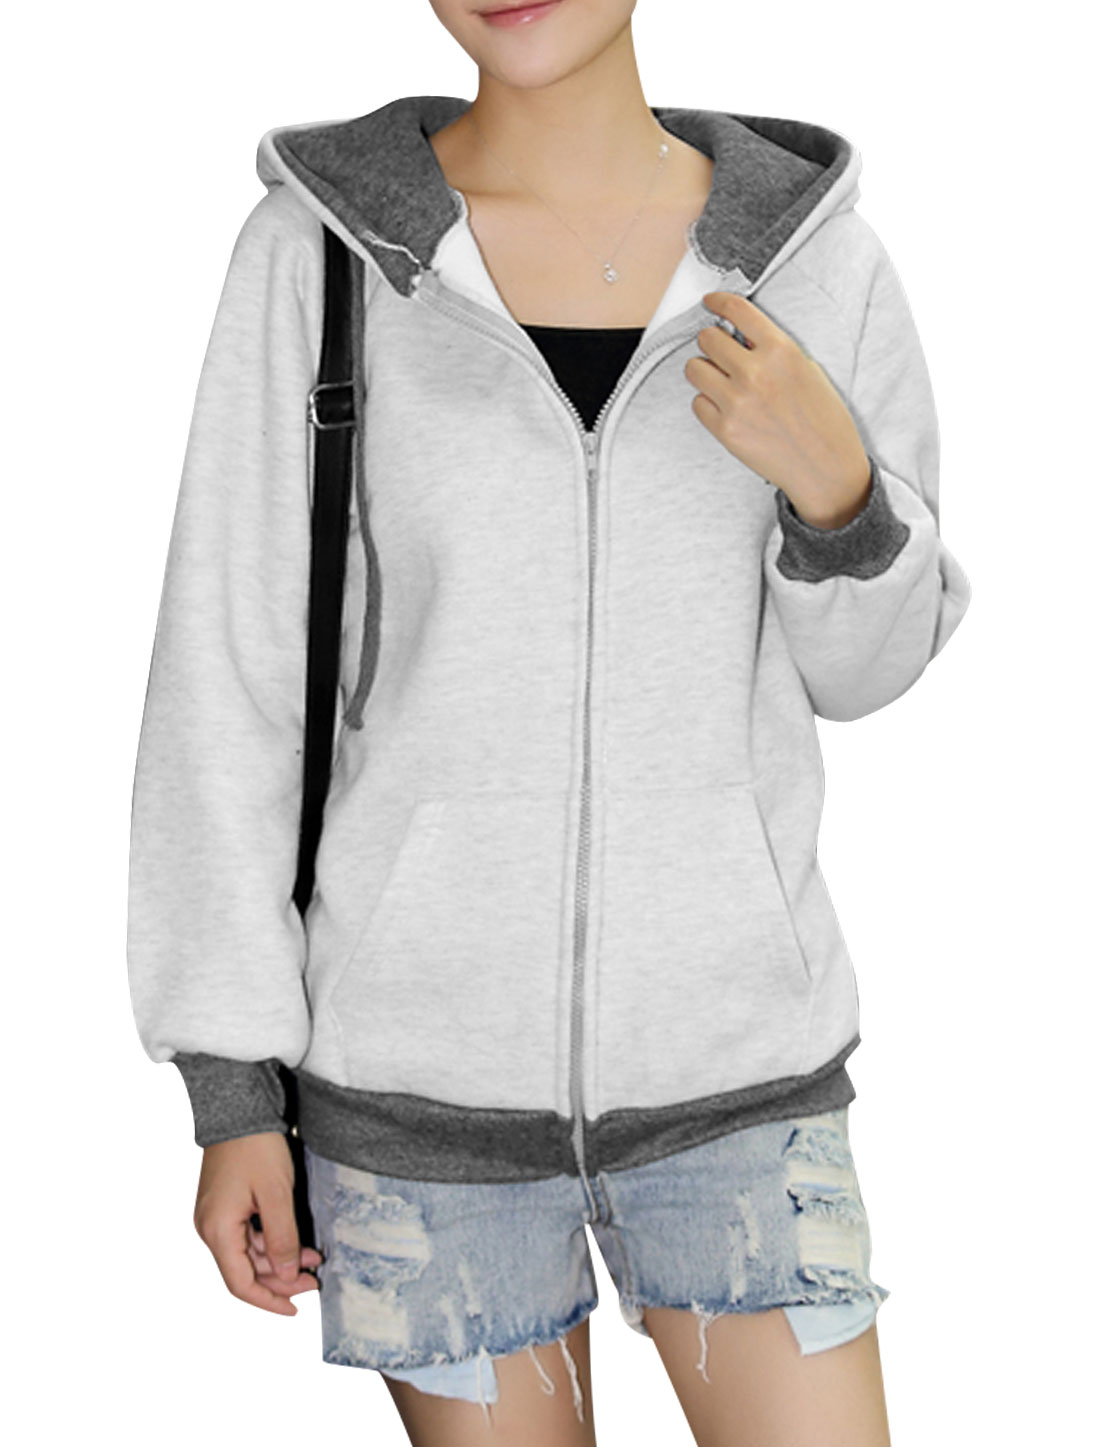 Ladies Light Gray Long Sleeves Zip Fly Kangaroo Pockets Hoodie S